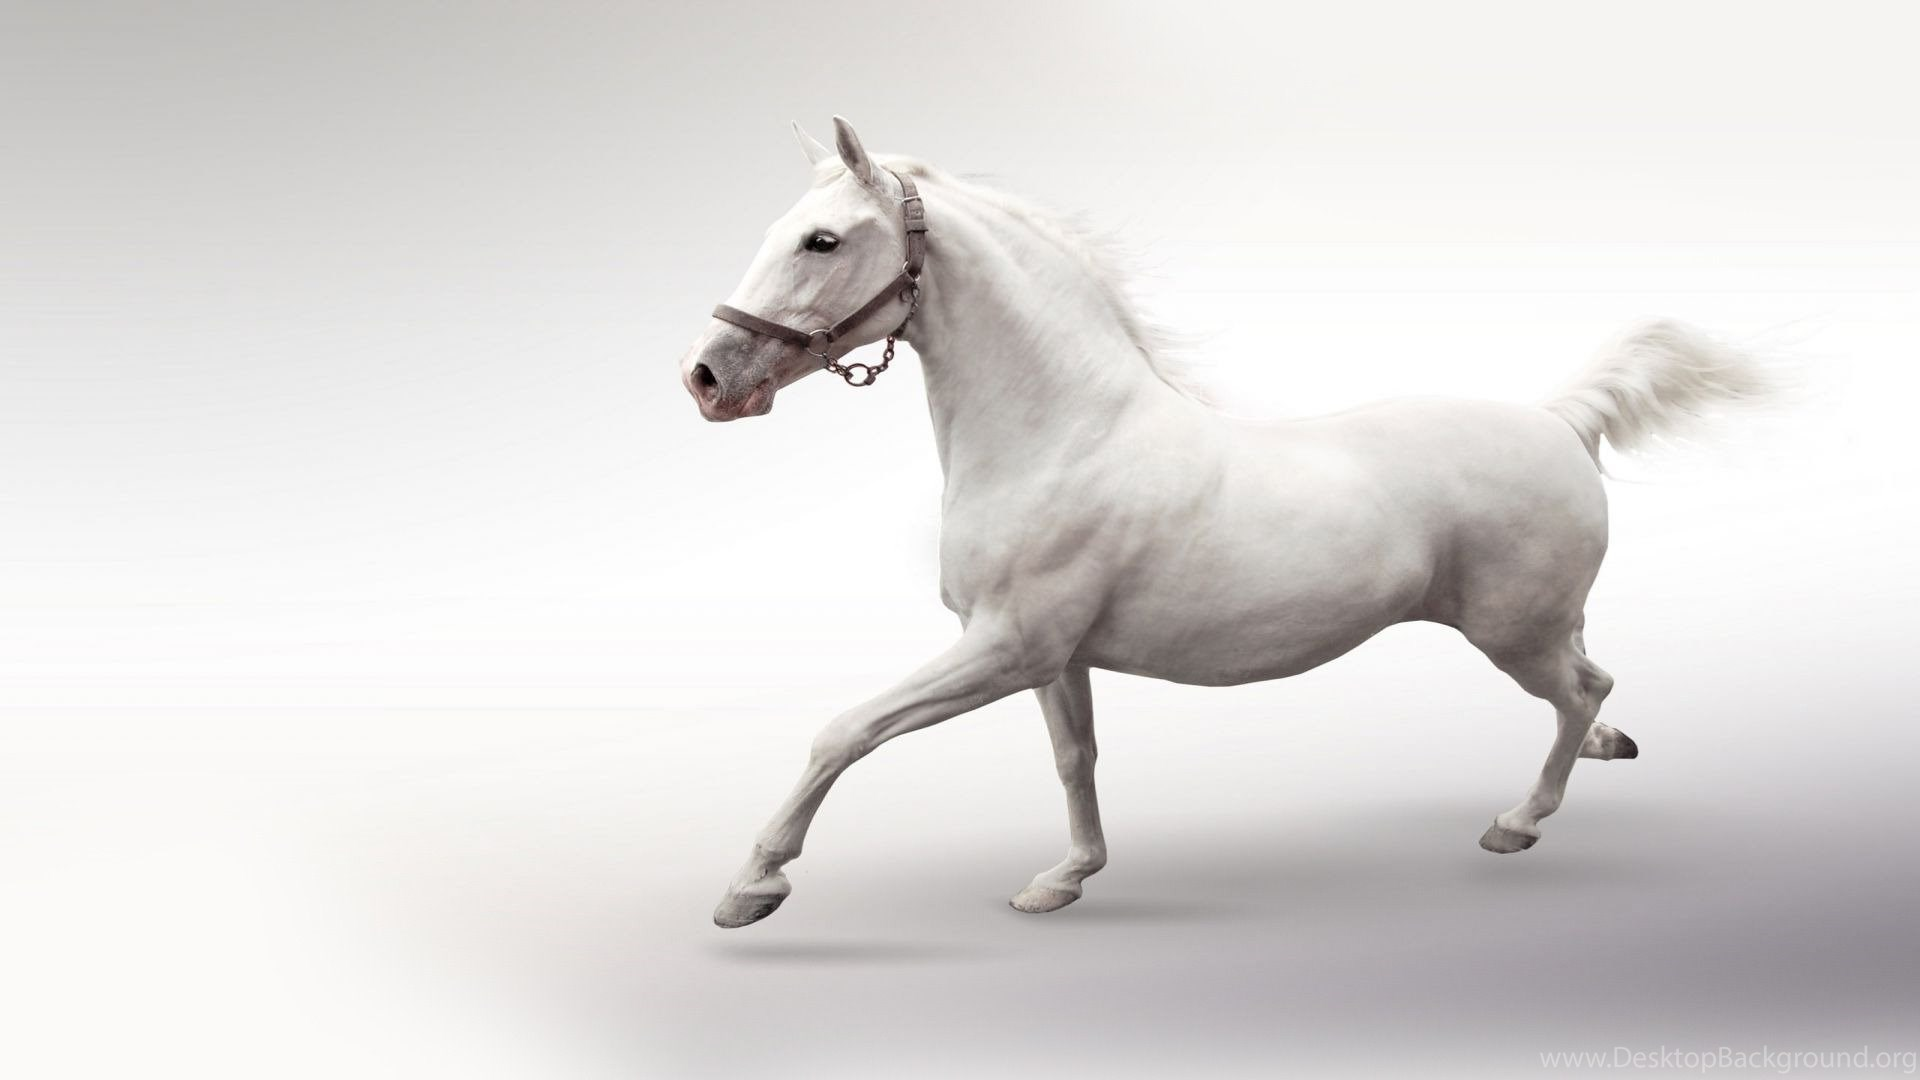 High Resolution Beautiful Animal Running White Horse Wallpapers Hd Desktop Background